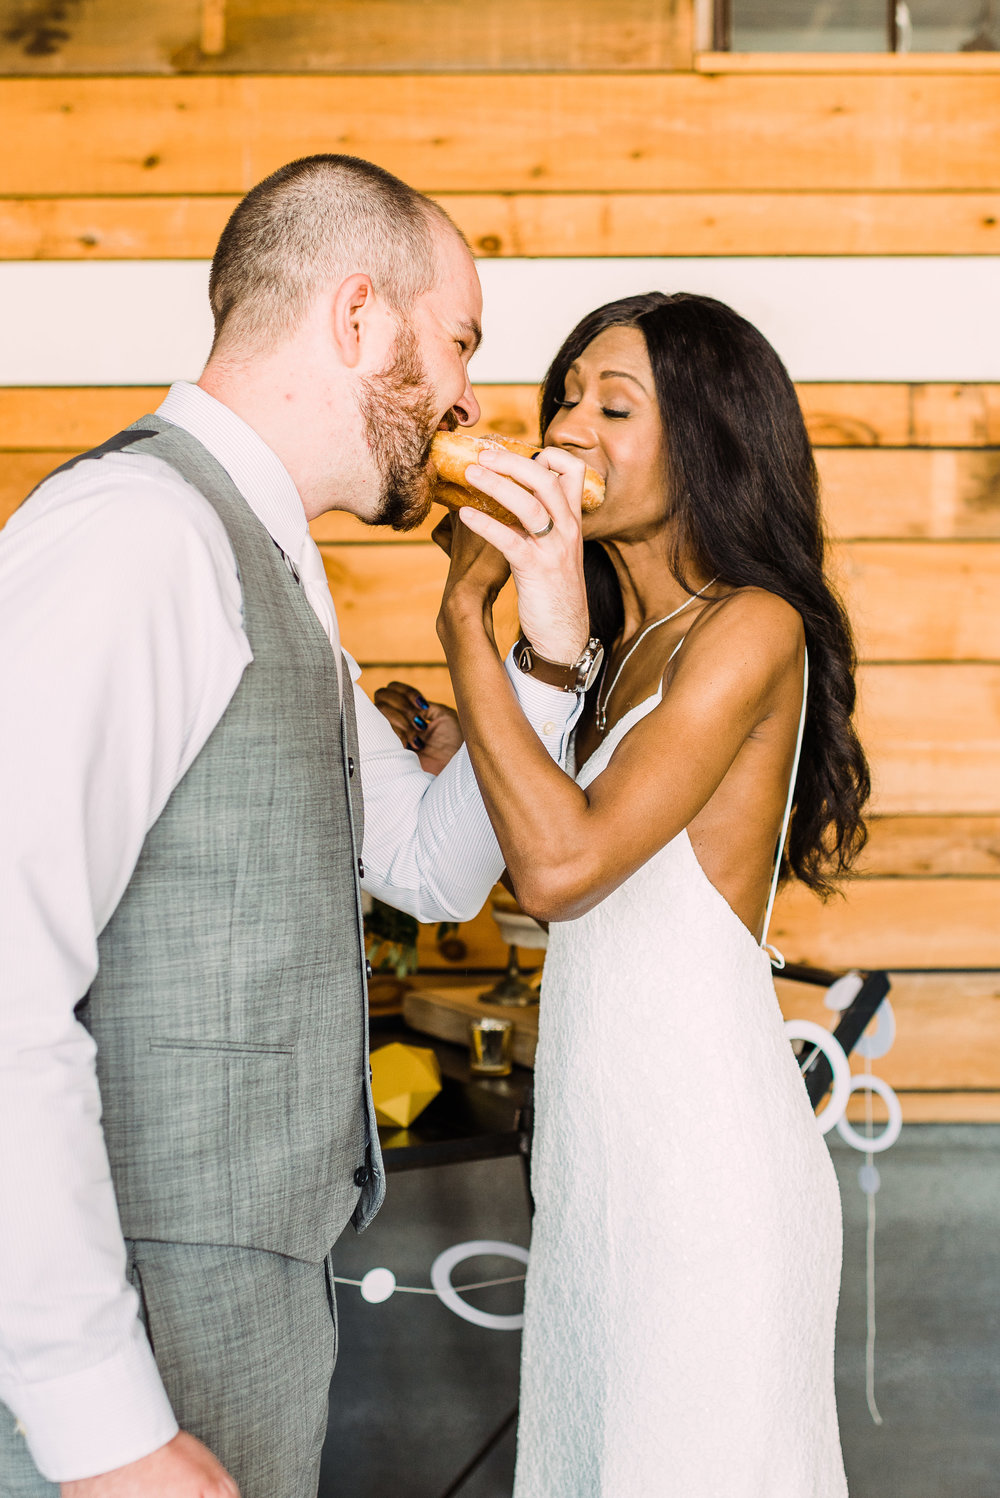 wedding catering donuts for summer fun wedding